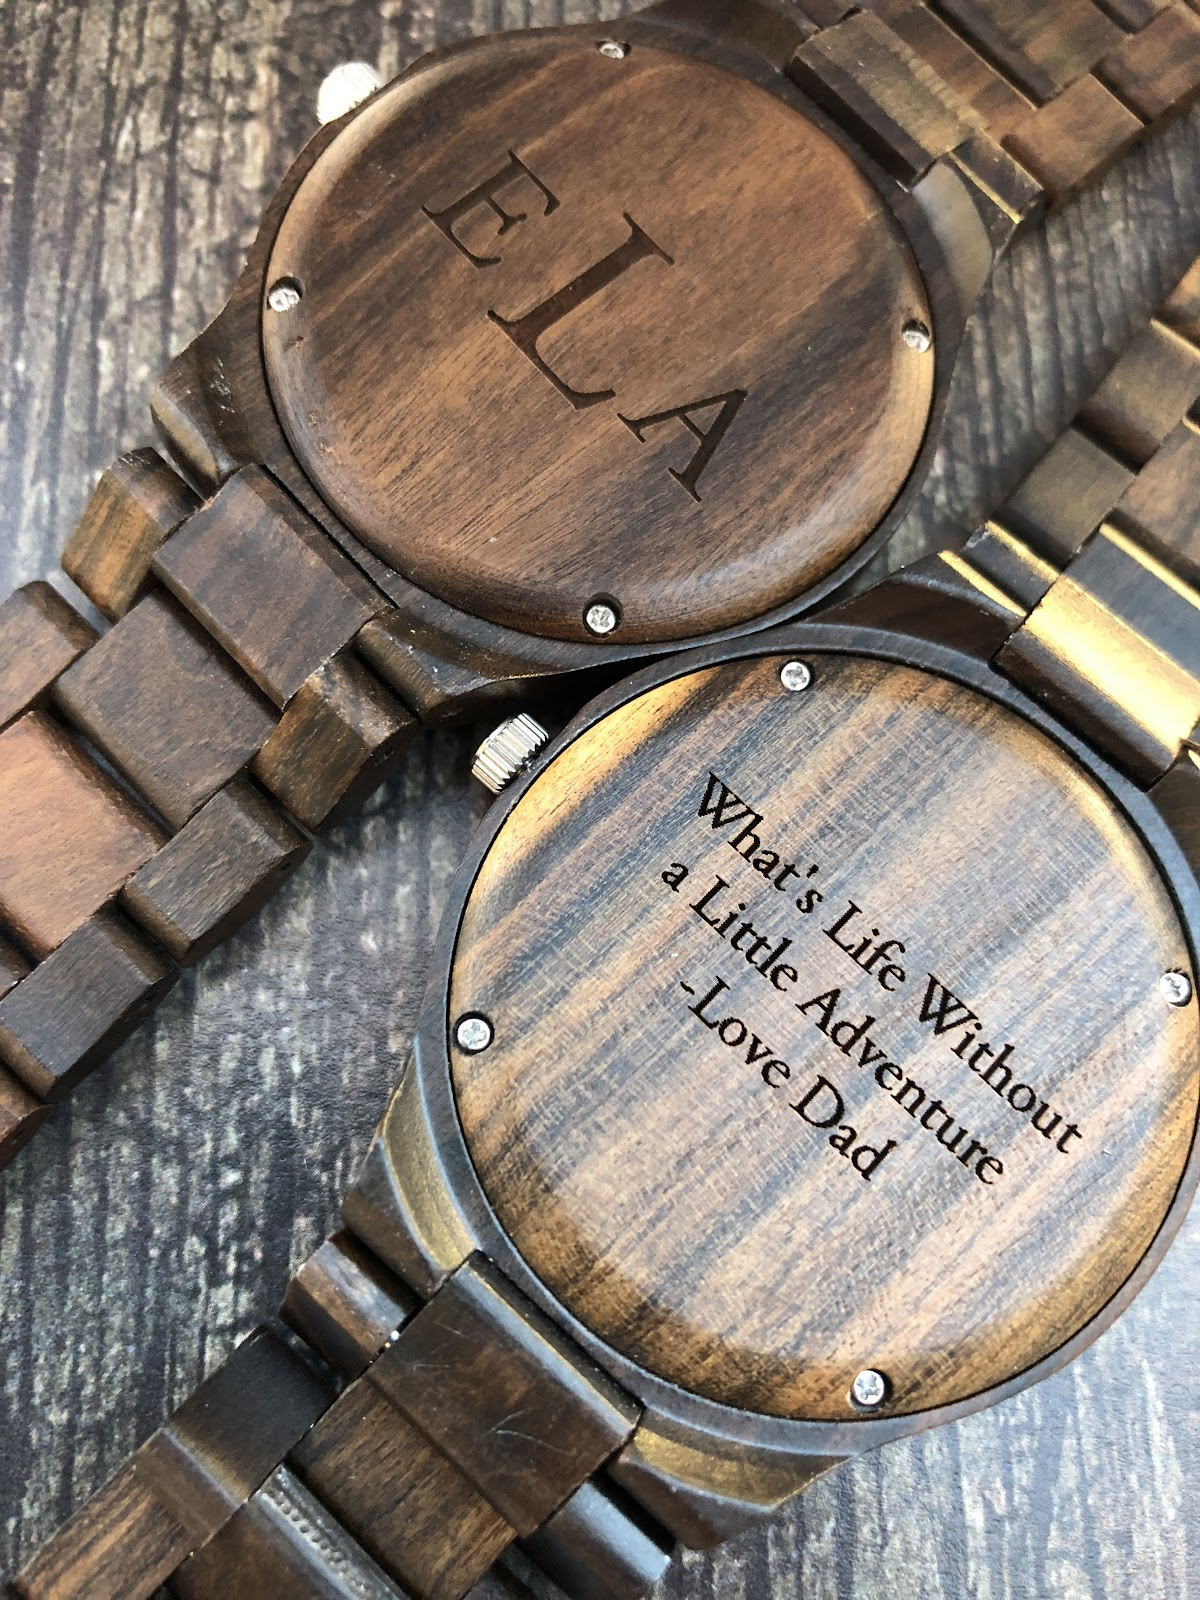 "Darrk brown wooden watches engraved with the initials E L A and a quote that says ""What's Life Without a Little Adventure, Love Dad""."